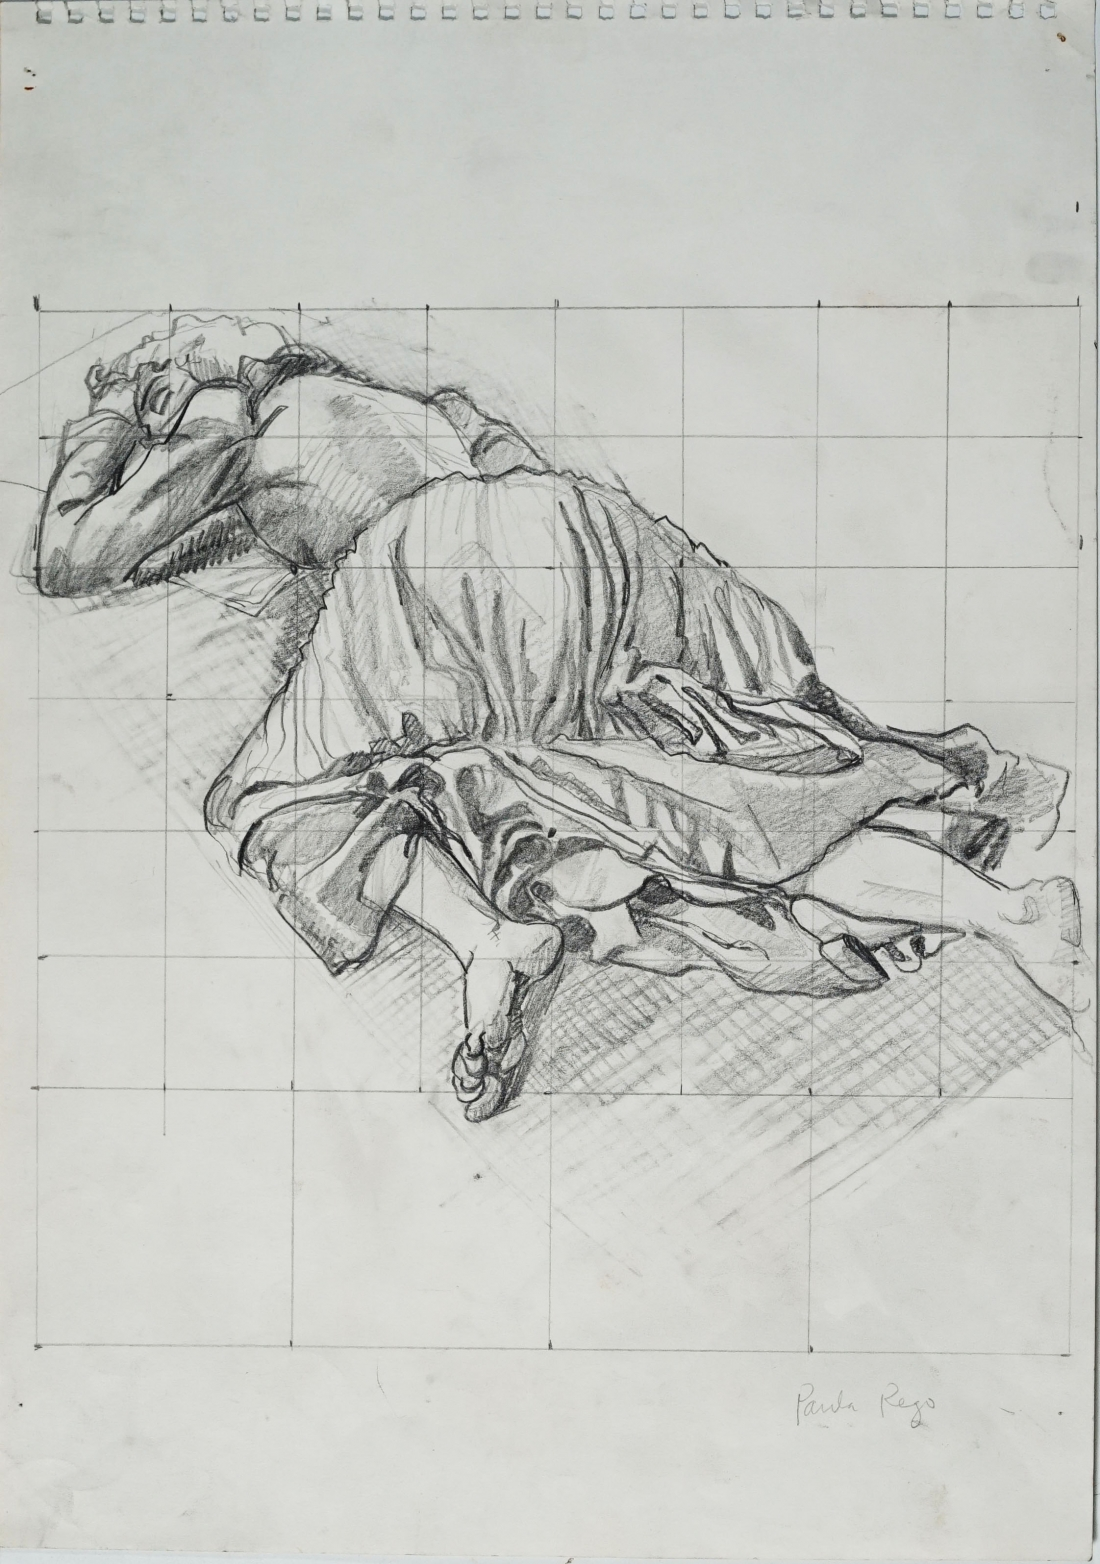 Paula Rego, Life Study for The Return of the Native 2, 1992, Private Collection © Paula Rego, courtesy Marlborough Fine Art